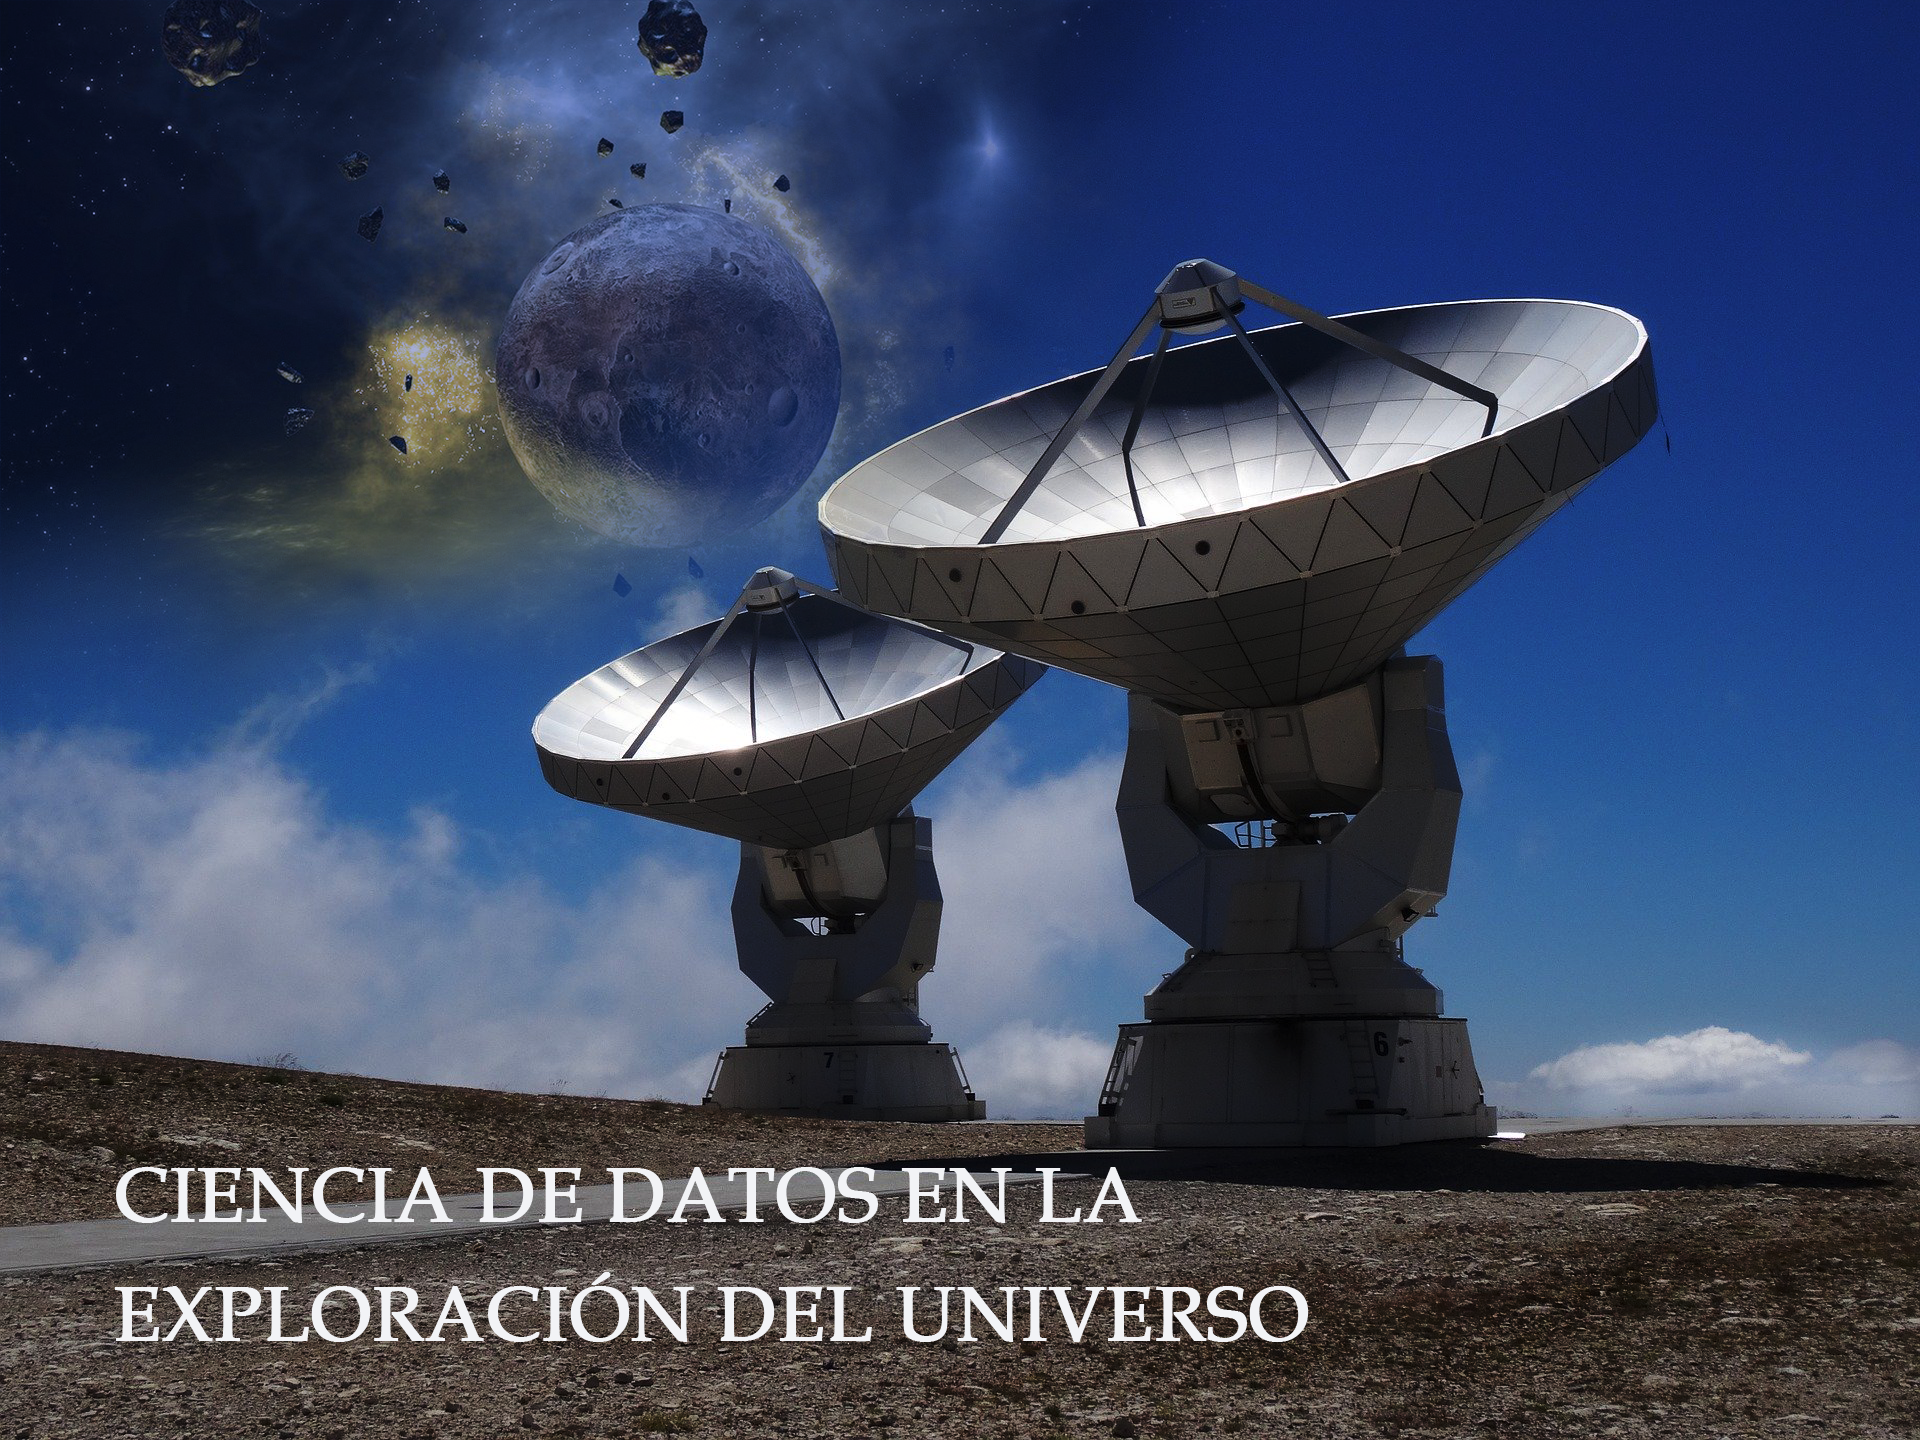 Big Data y Data Science para observar al Universo, Astronomía y Big Data, SETI Big Data y Ciencia de Datos